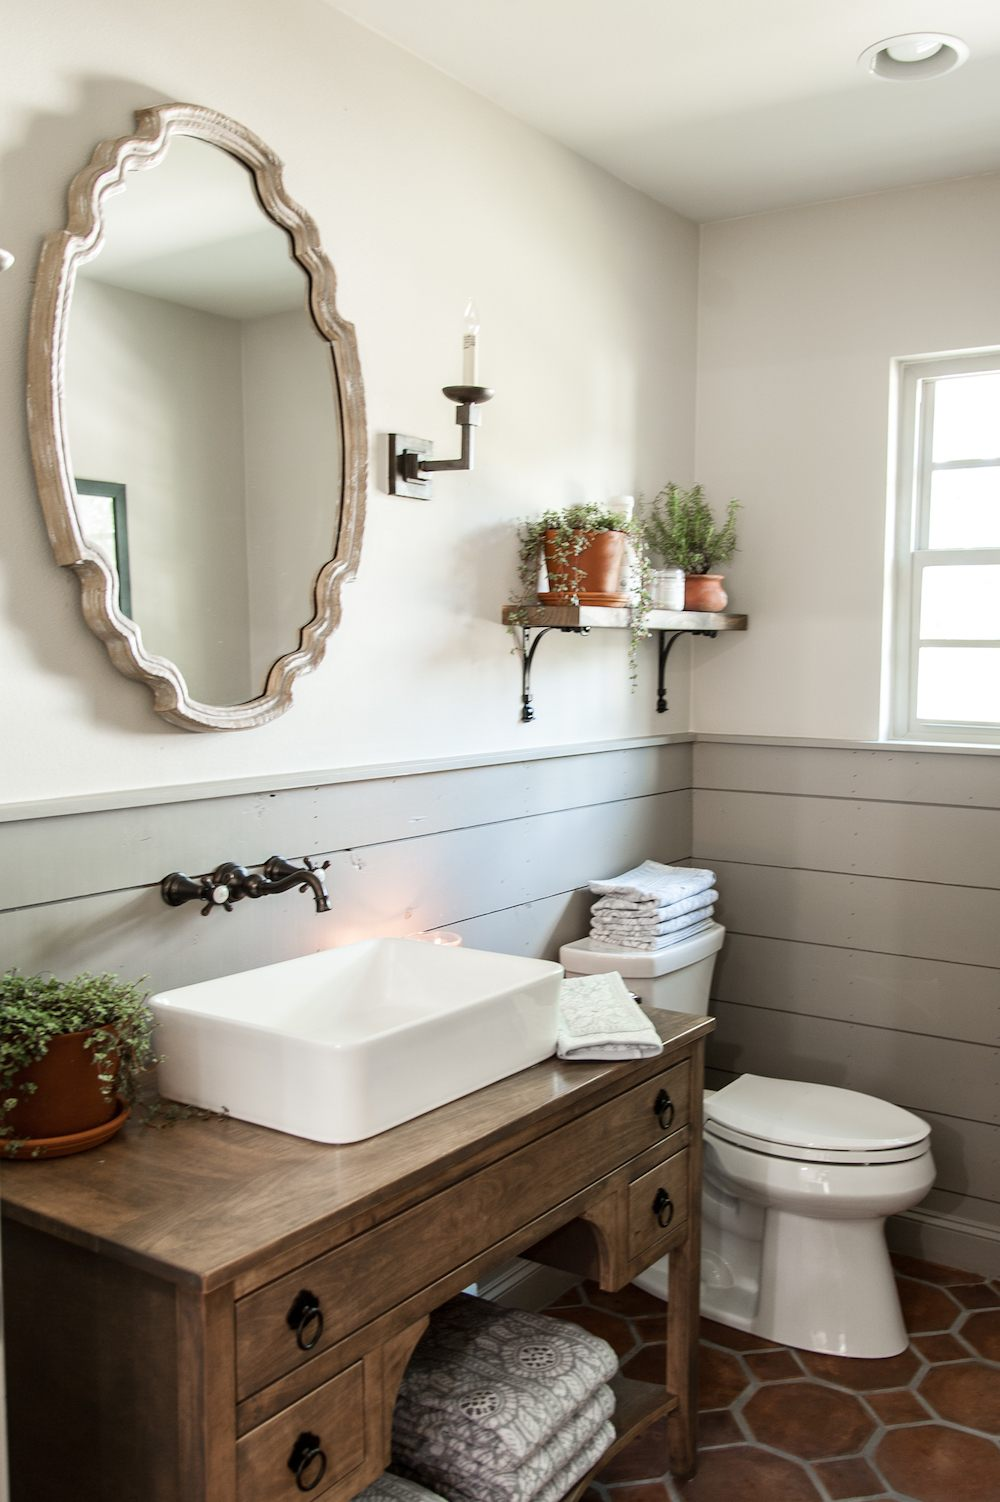 Joanna Gaines Fixer Upper Bathroom Ideas